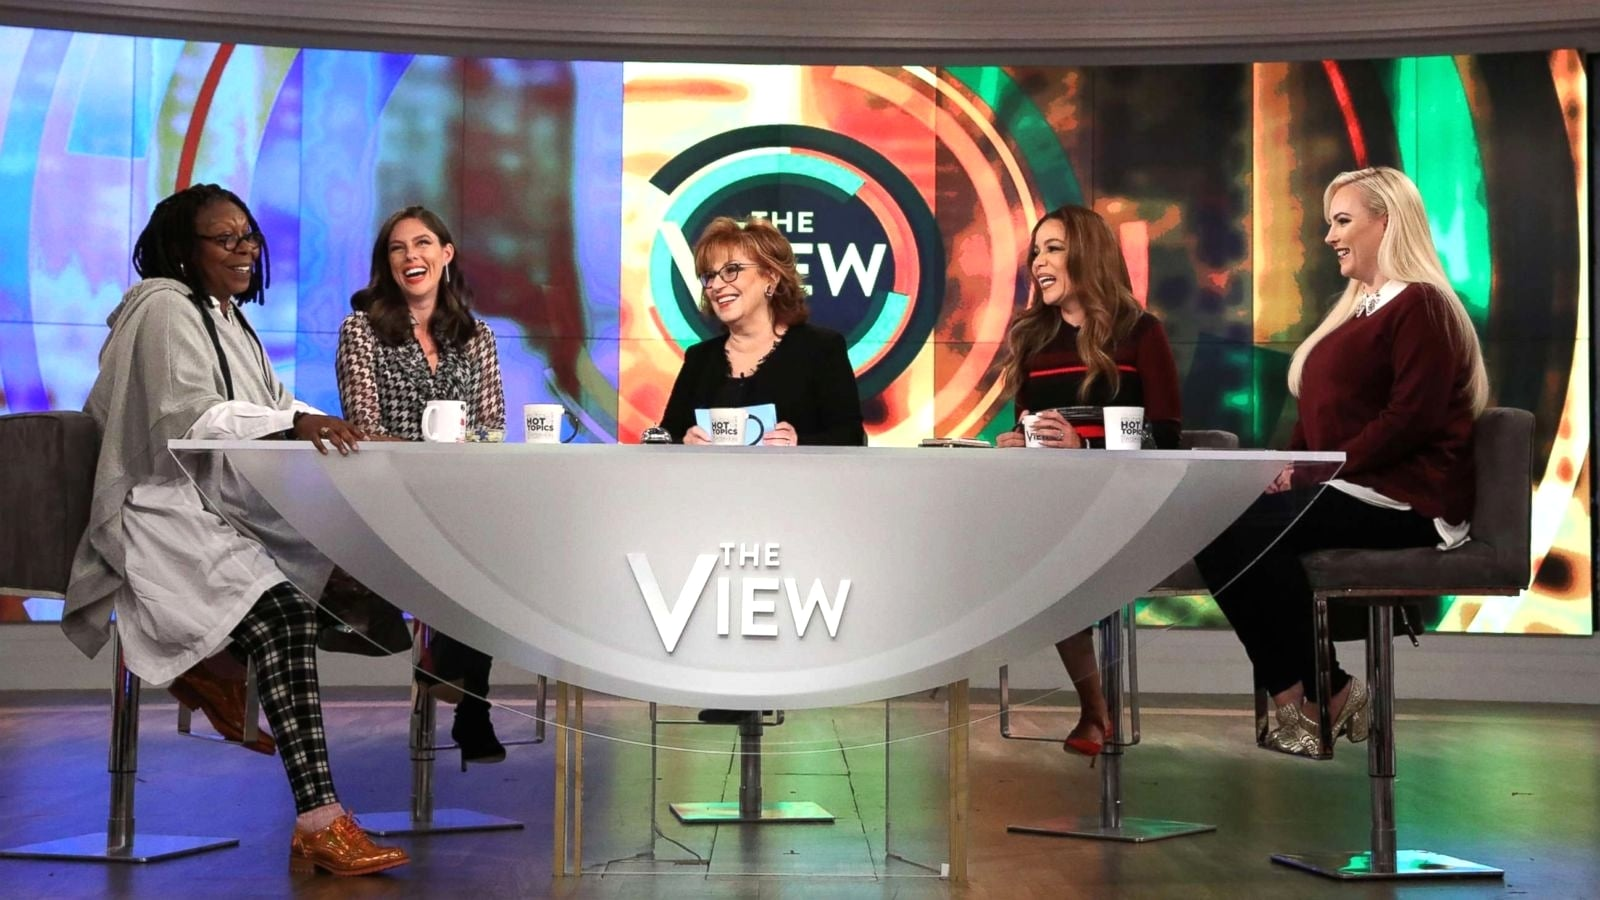 The View - Season 3 Episode 141 : Season 3, Episode 141